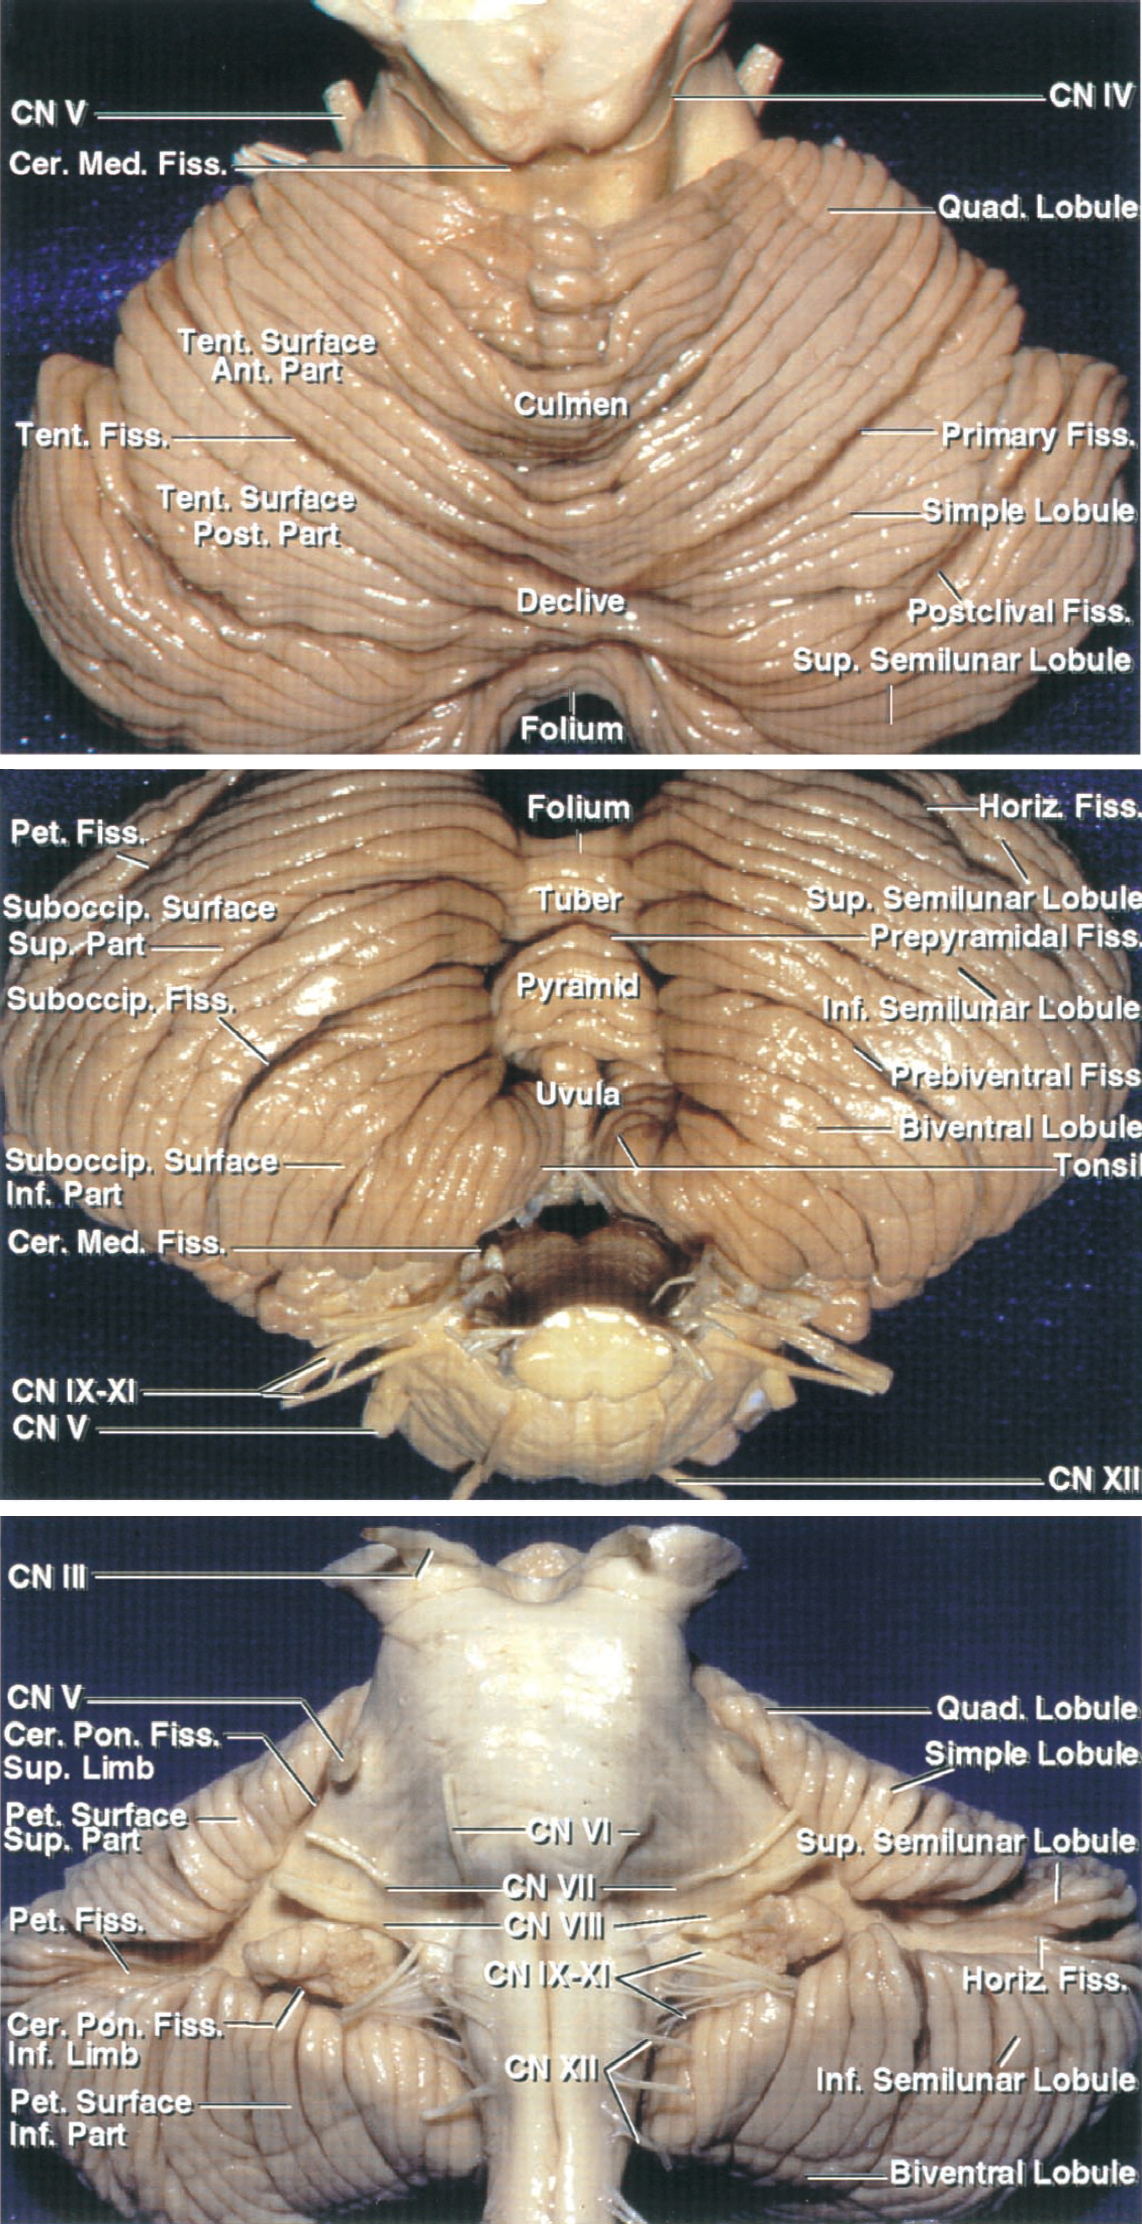 Figure 1: The tentorial (top), suboccipital (middle), and petrosal (bottom) surfaces of the cerebellum and their relevant anatomy are shown. The names of these surfaces are based on their overlying structures (images courtesy of AL Rhoton, Jr).